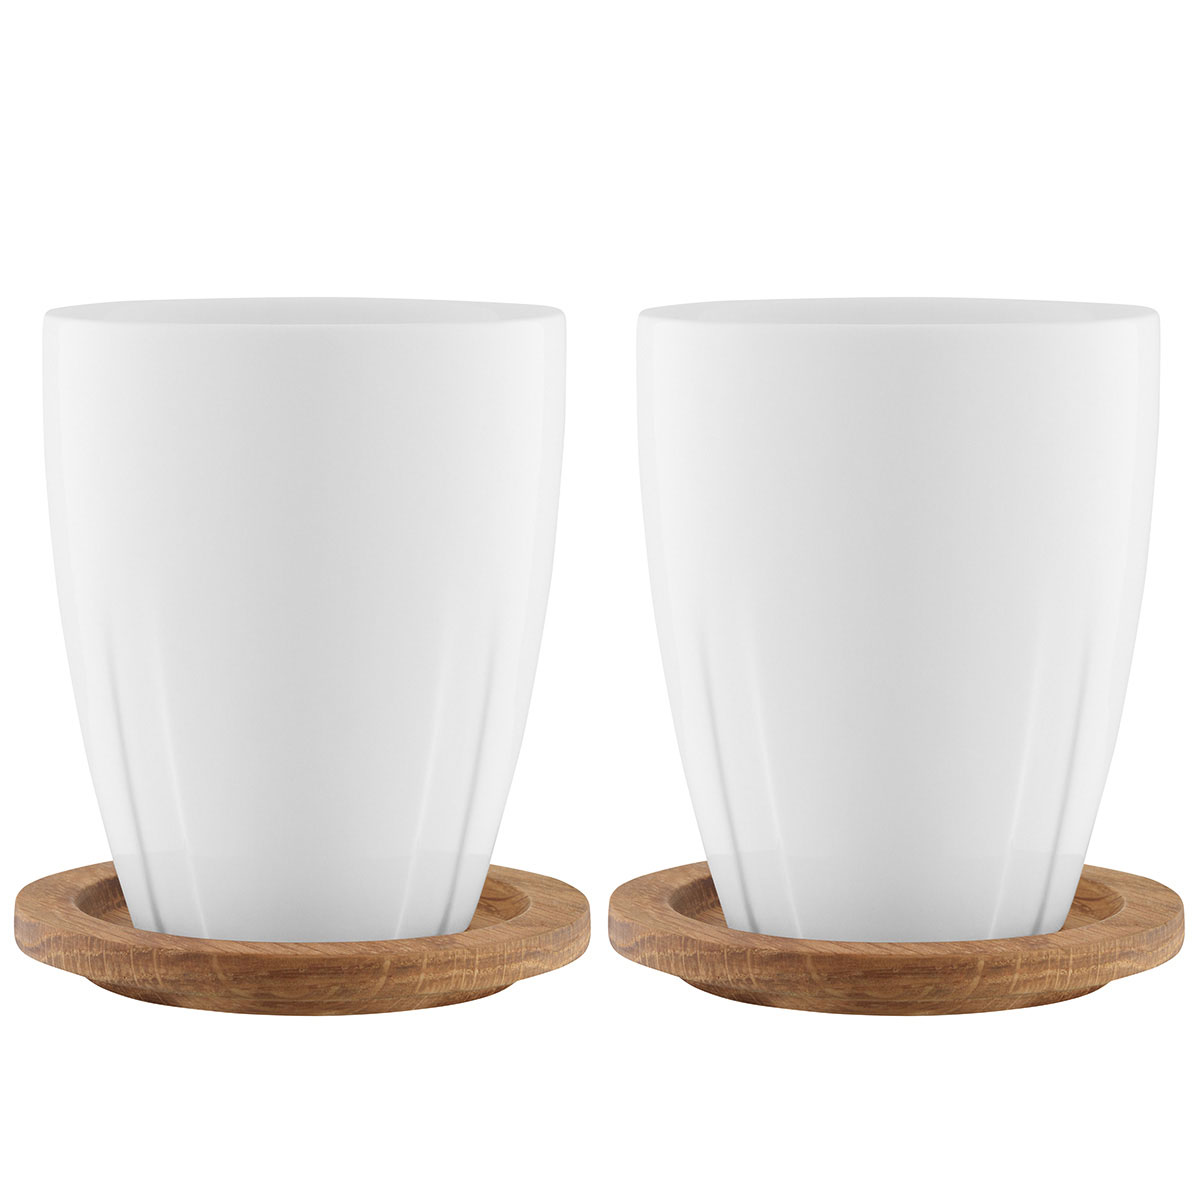 Kosta Boda Bruk Porcelain Mug With Oak Lid, Pair